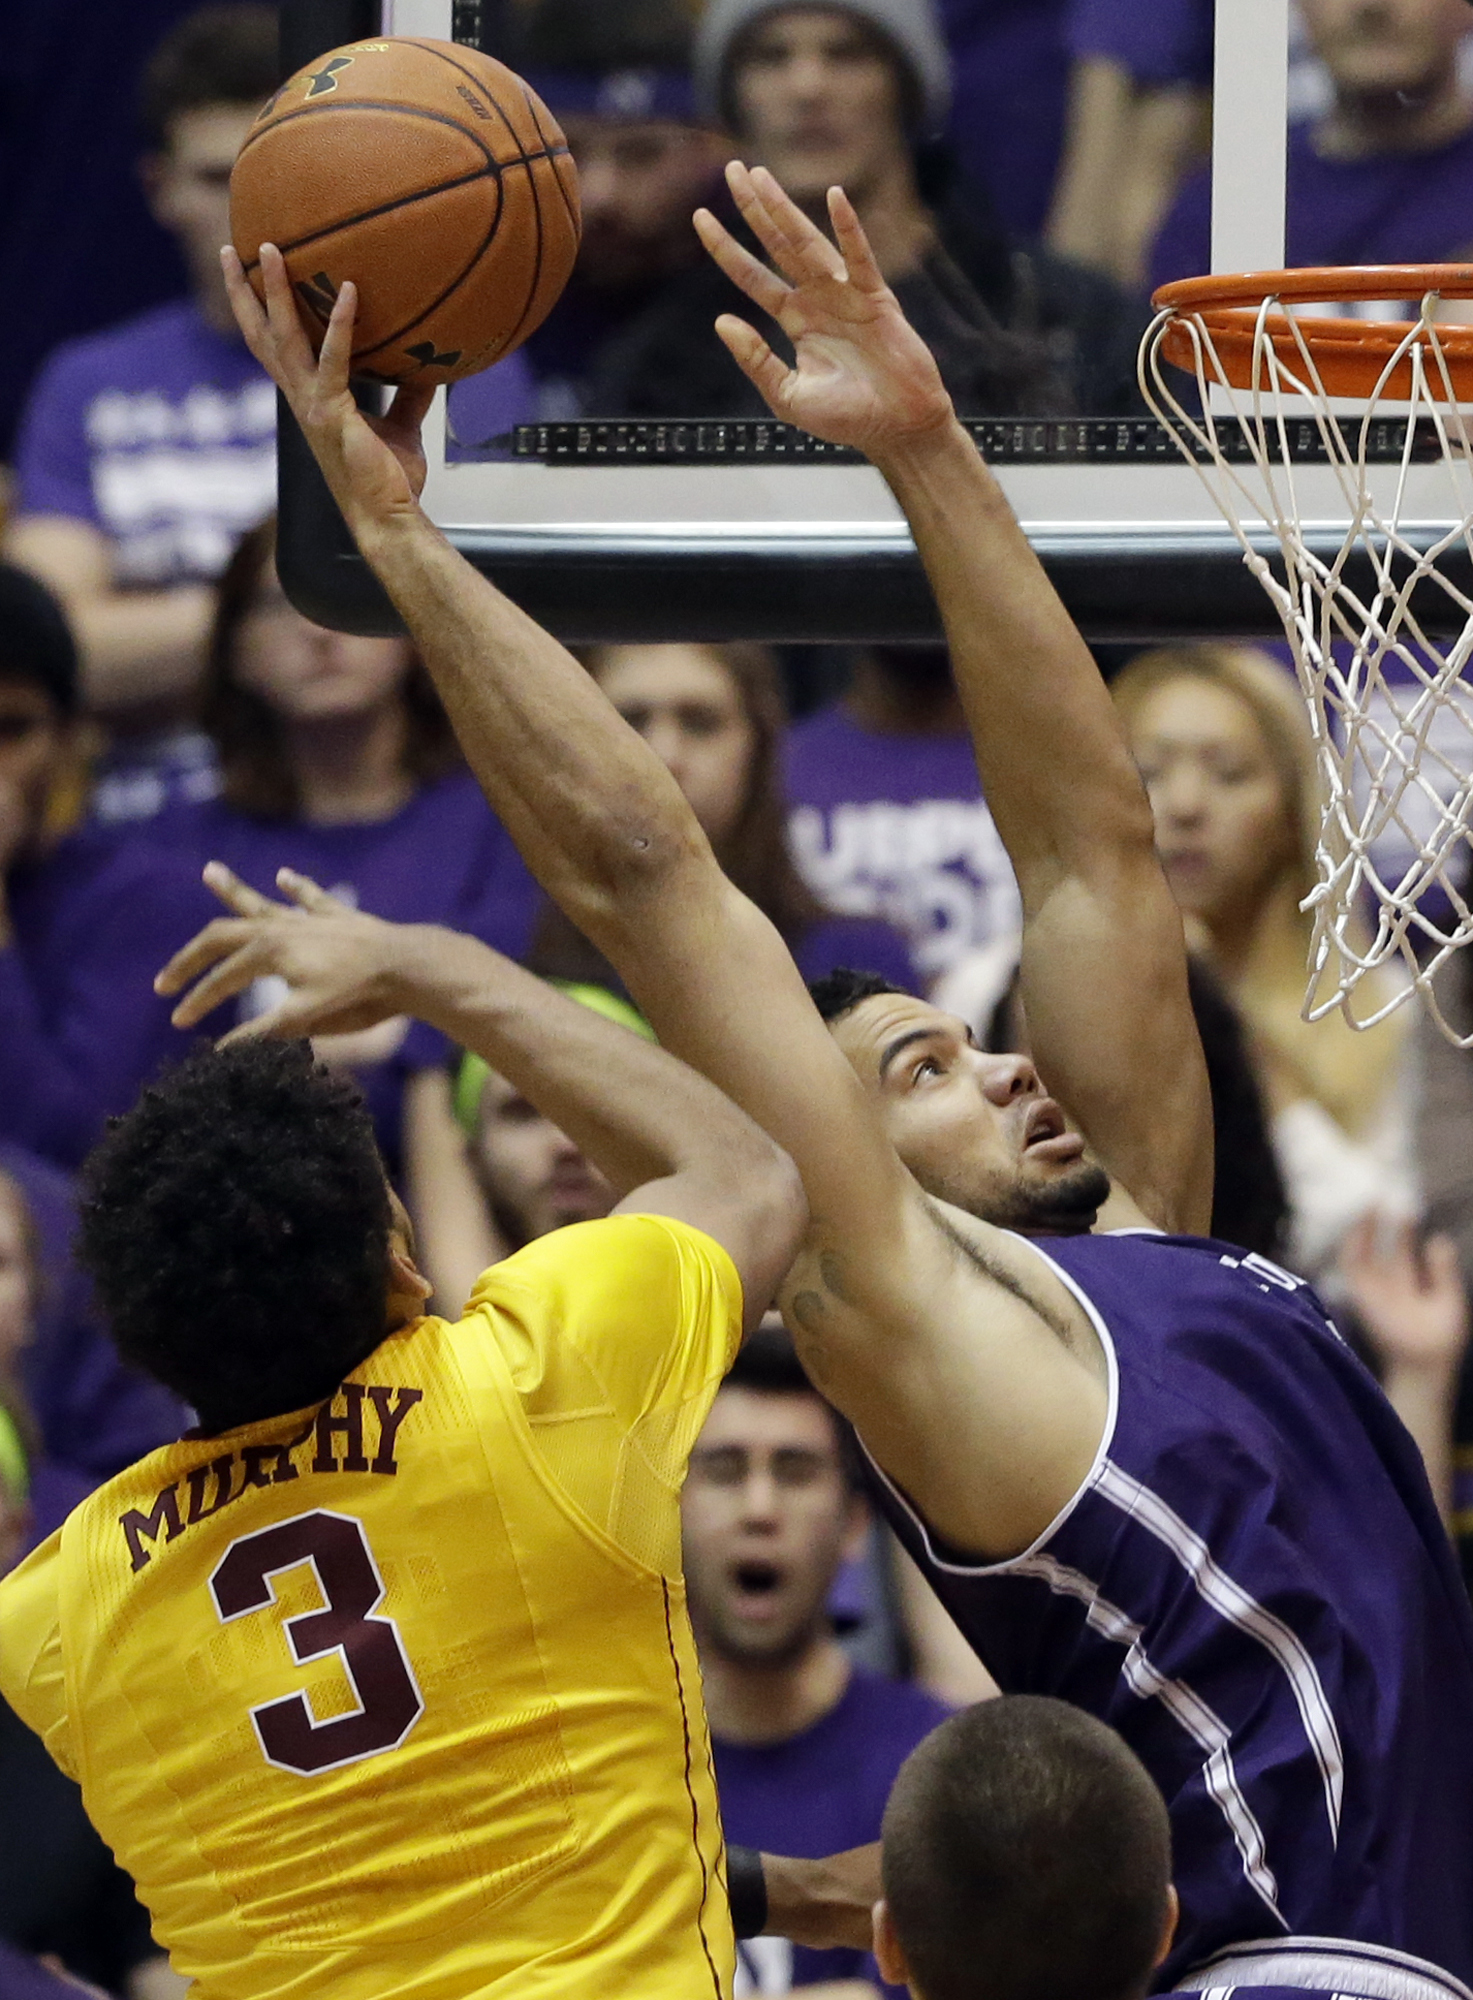 Northwestern center Joey van Zegeren, right, shoots past Minnesota forward Jordan Murphy during the first half of an NCAA college basketball game on Thursday, Feb. 4, 2016, in Evanston, Ill. (AP Photo/Nam Y. Huh)